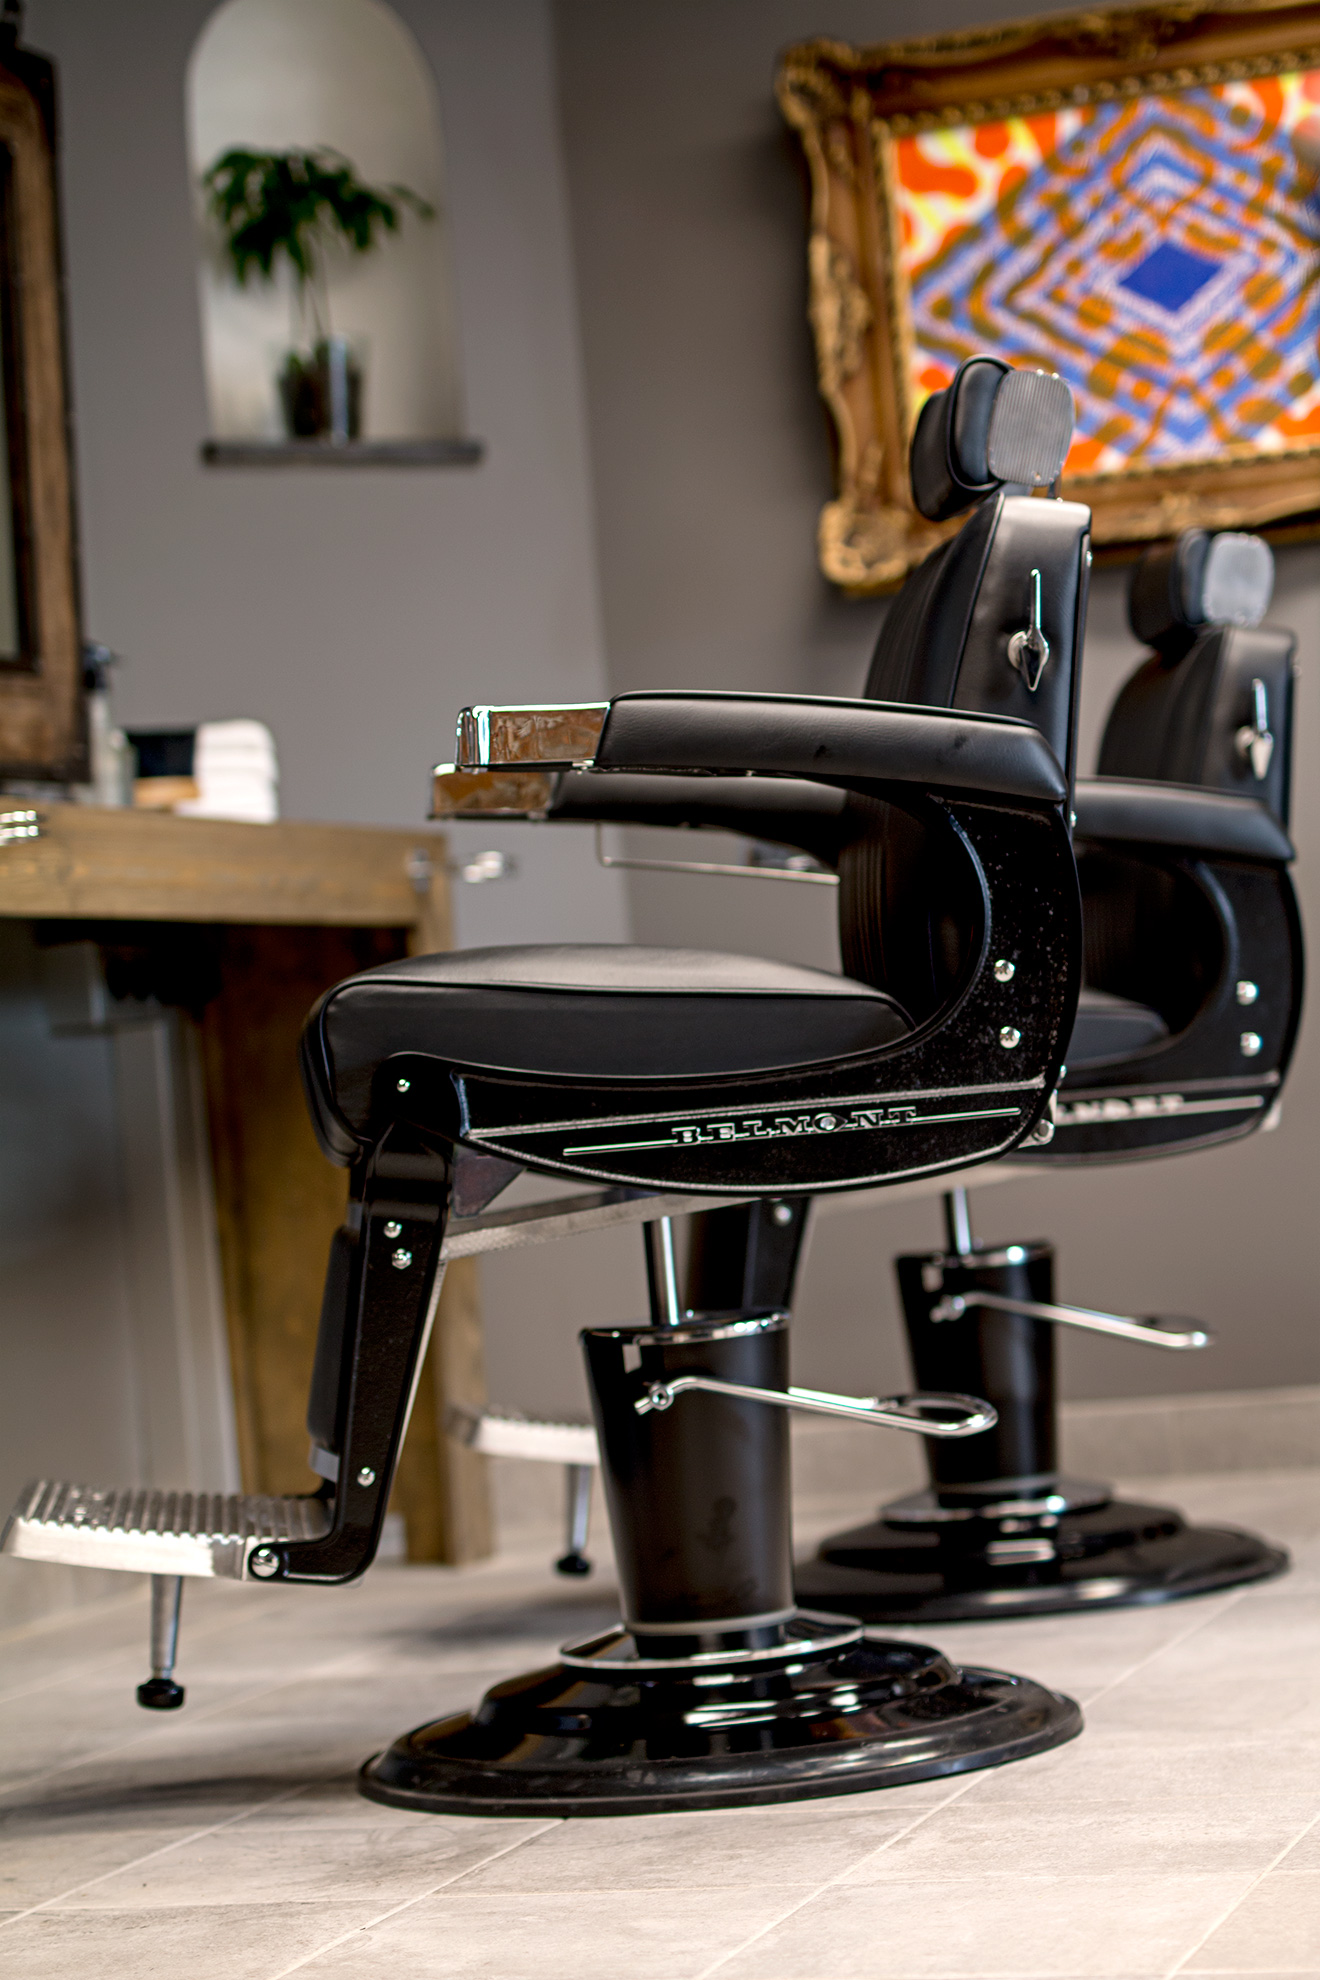 barber_stations_sooma